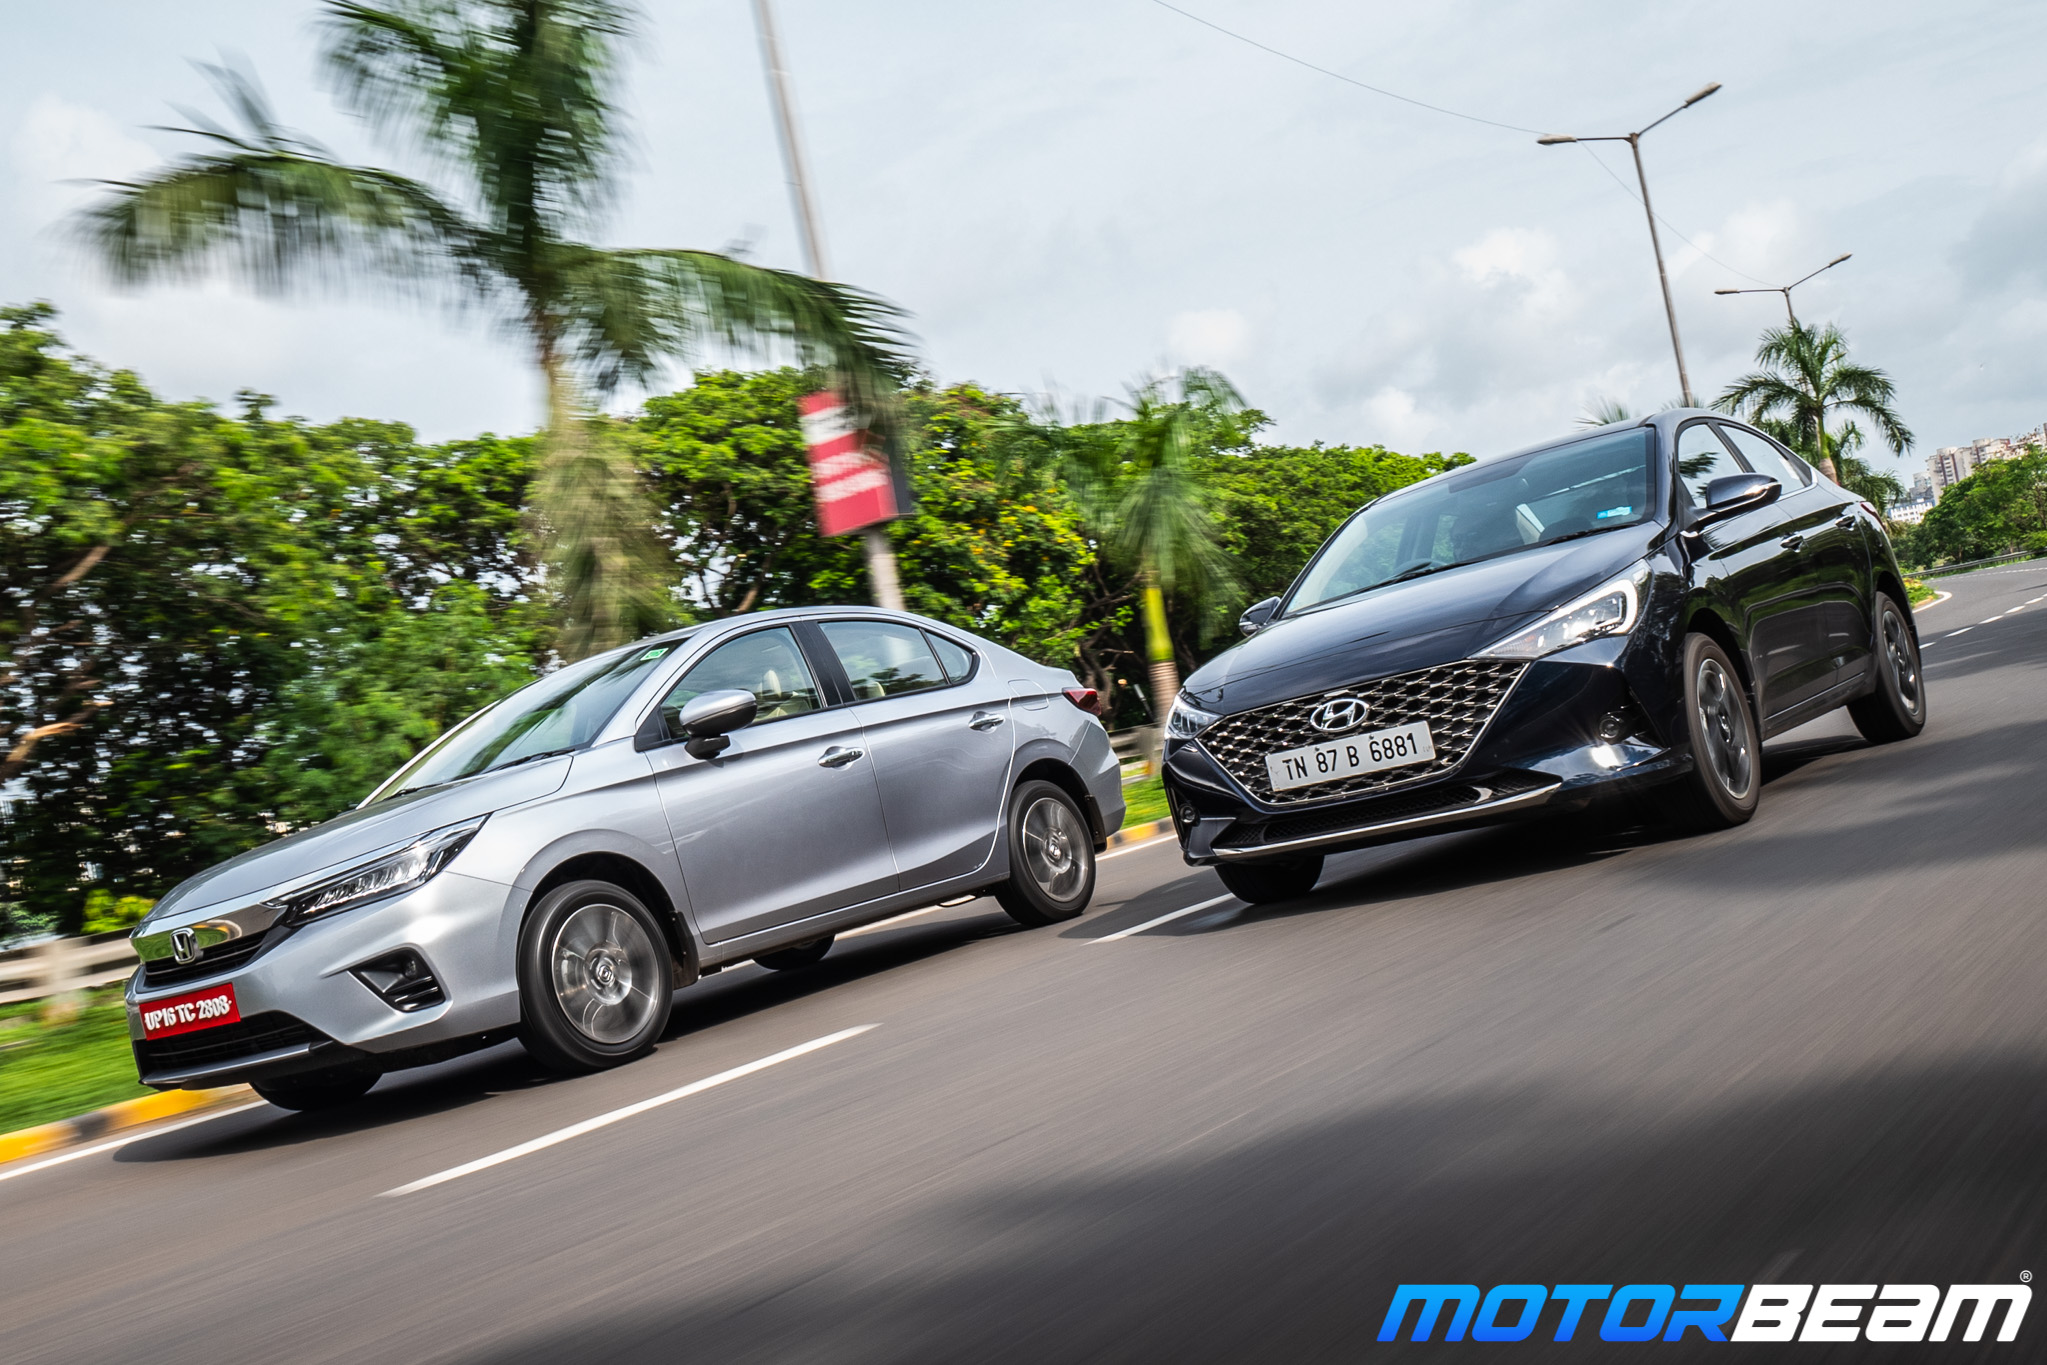 2020-Honda-City-vs-Hyundai-Verna-12